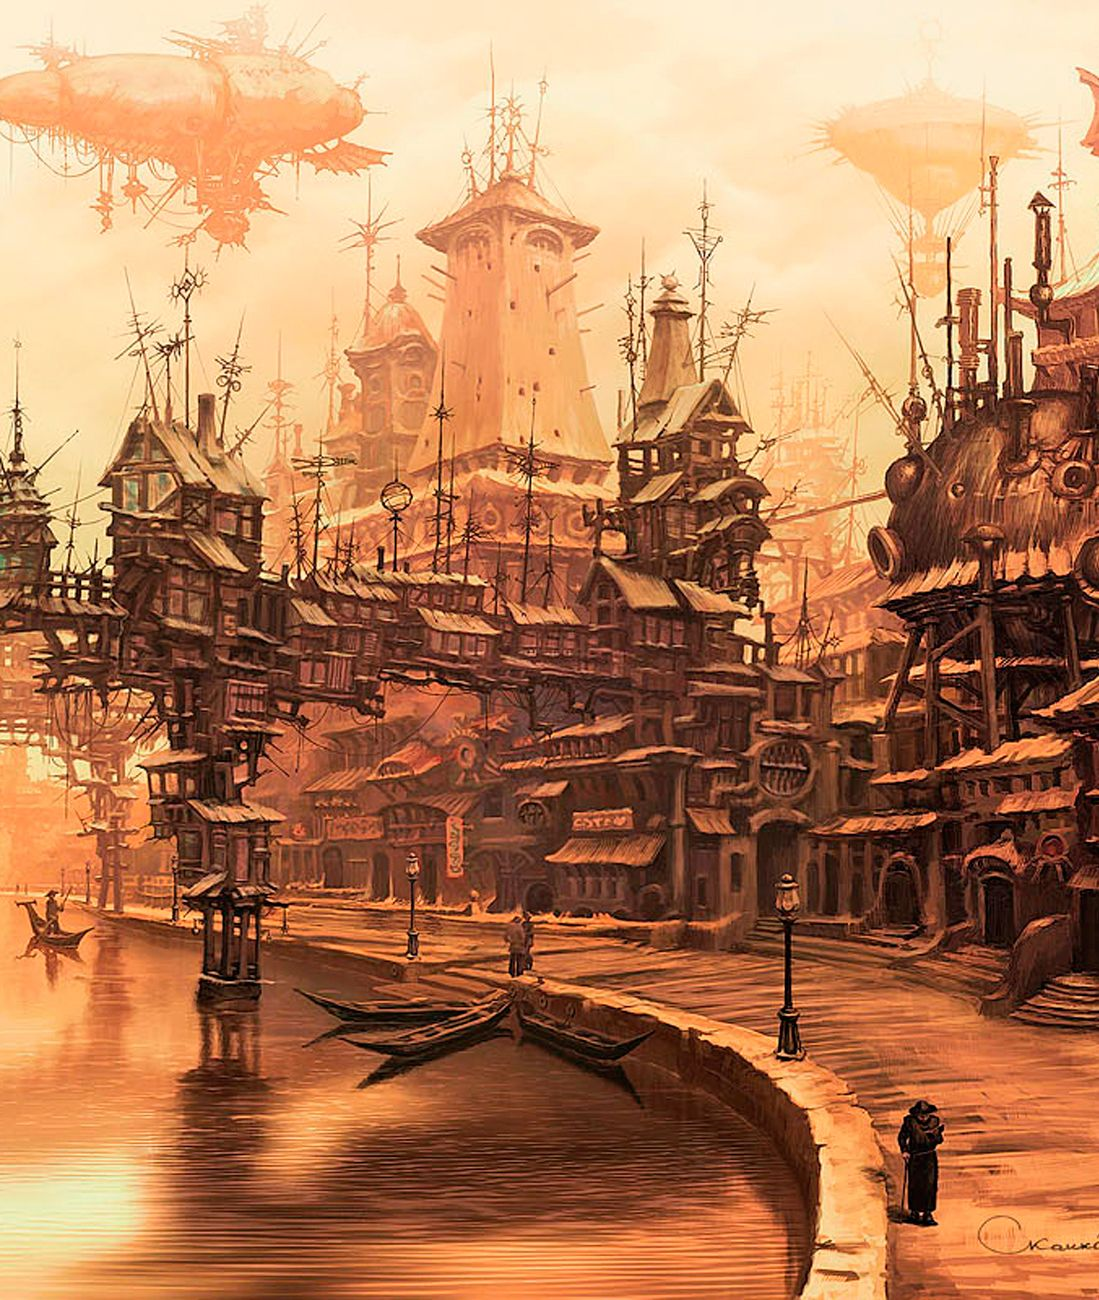 Fantasy City With Steampunk Anime - Elements